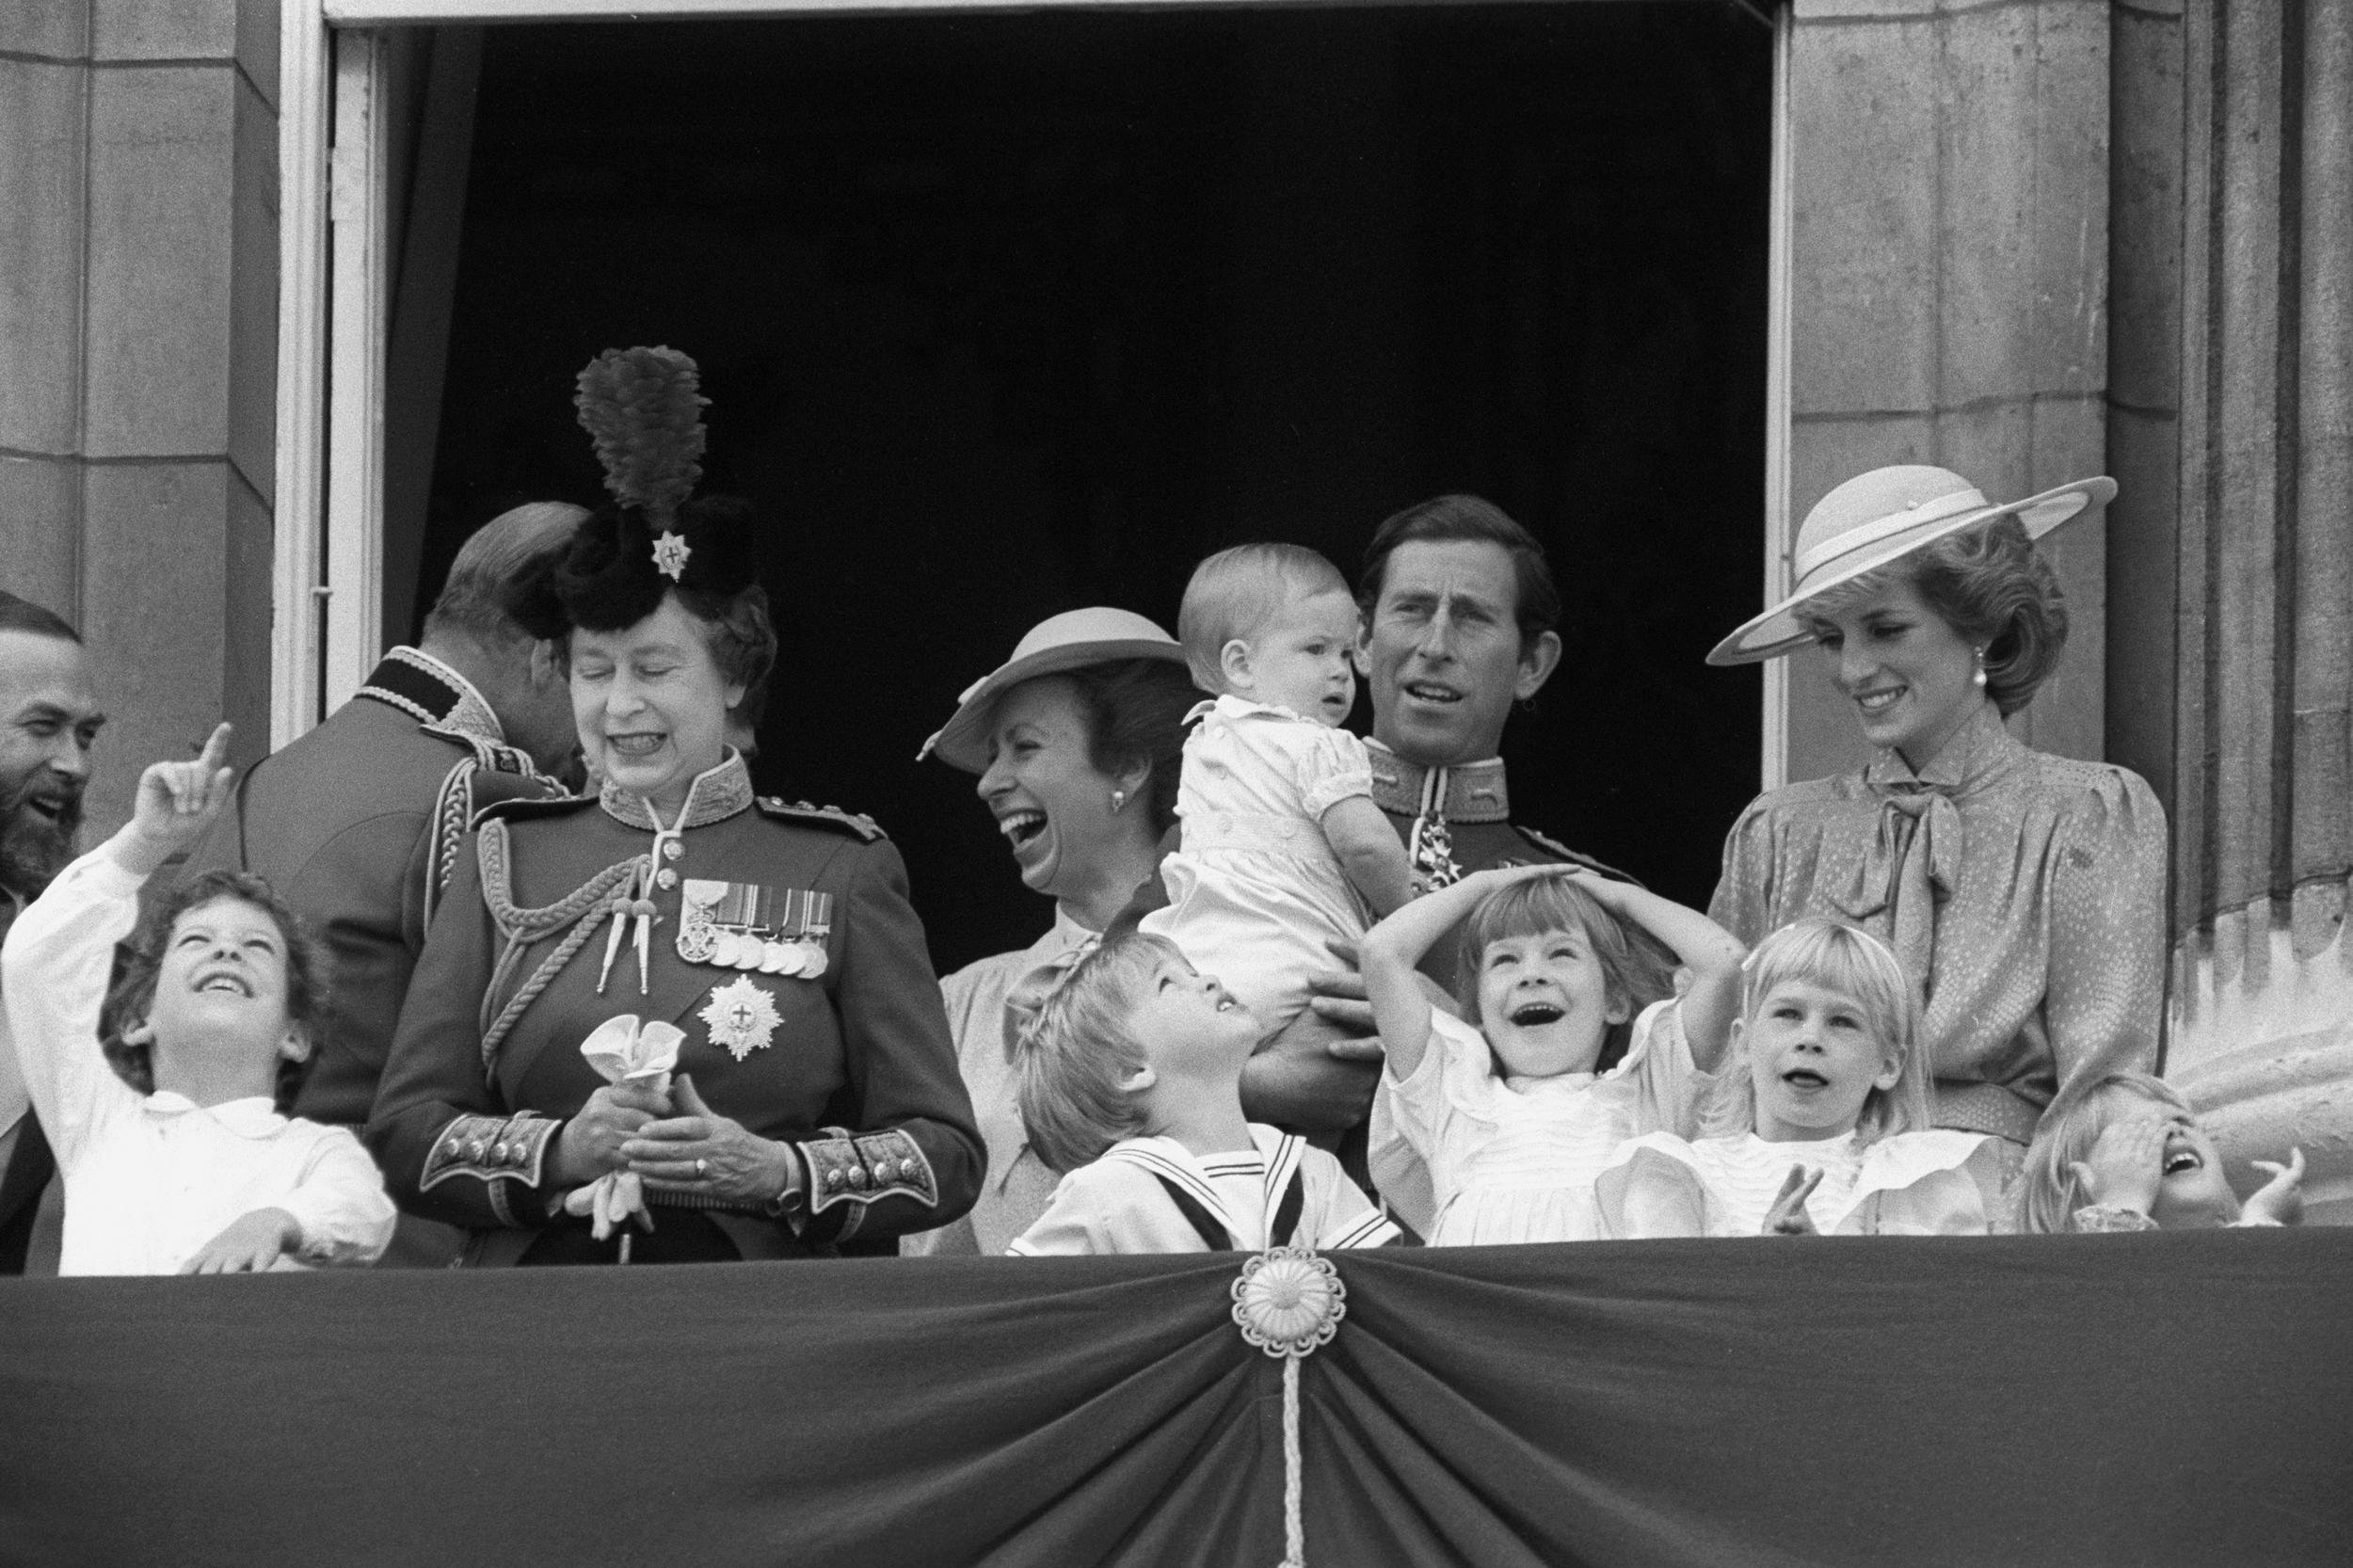 Members of the Royal family on the balcony of Buckingham Palace, London, to watch the fly-past after the Trooping the Colour ceremony. Baby Prince Harry wriggles in the arms of his father, the Prince of Wales, who is flanked by the Princess Anne (l) and the Princess of Wales. Children in the front row (l-r) are Prince William of Wales, Lady Davina Windsor, the eight-year-0old daughter of the Duke and Duchess of Gloucester.